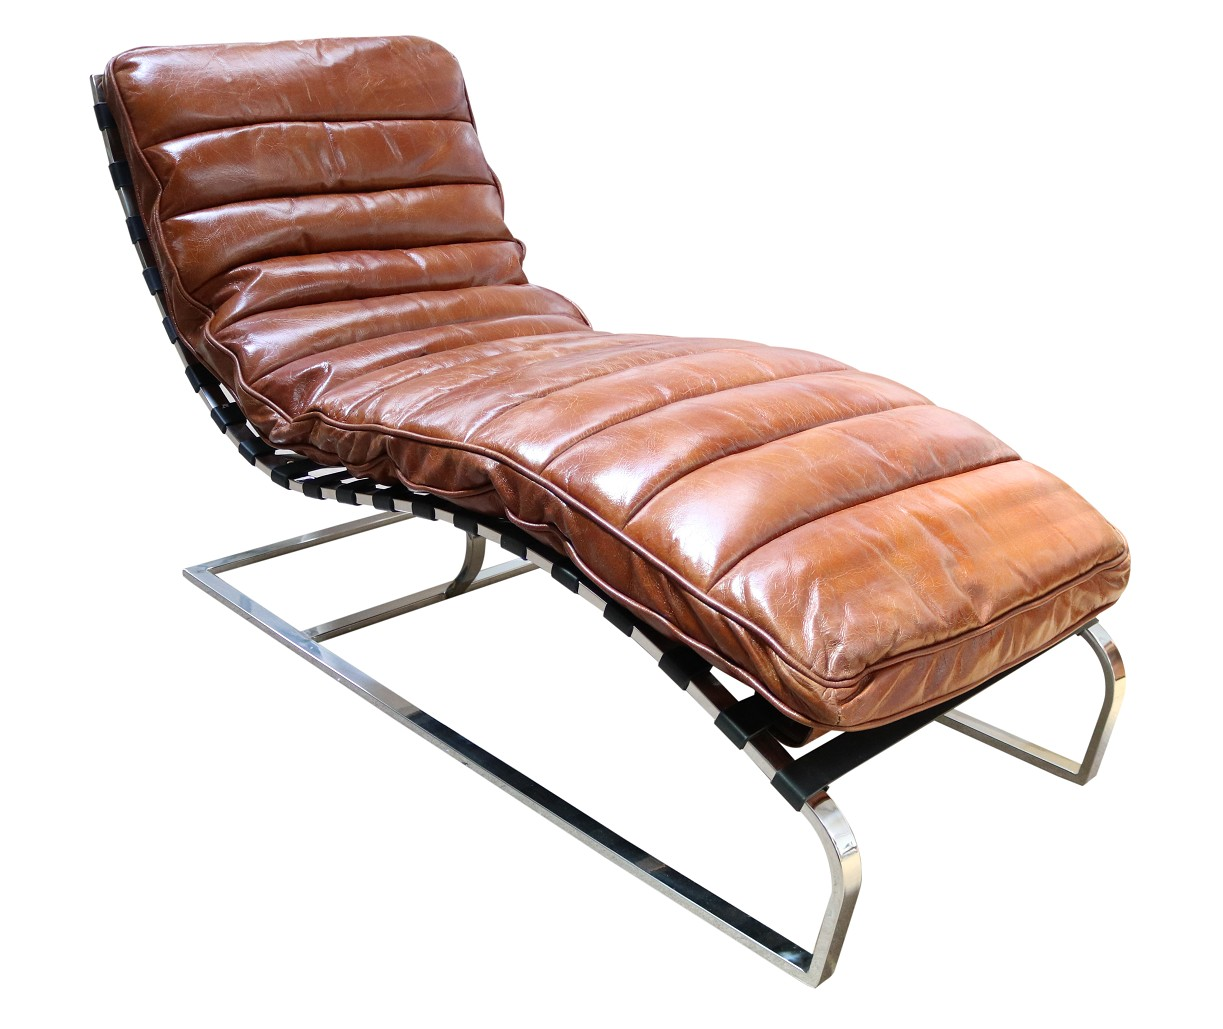 Awe Inspiring Bilbao Daybed Vintage Tan Distressed Leather Chaise Lounge Andrewgaddart Wooden Chair Designs For Living Room Andrewgaddartcom